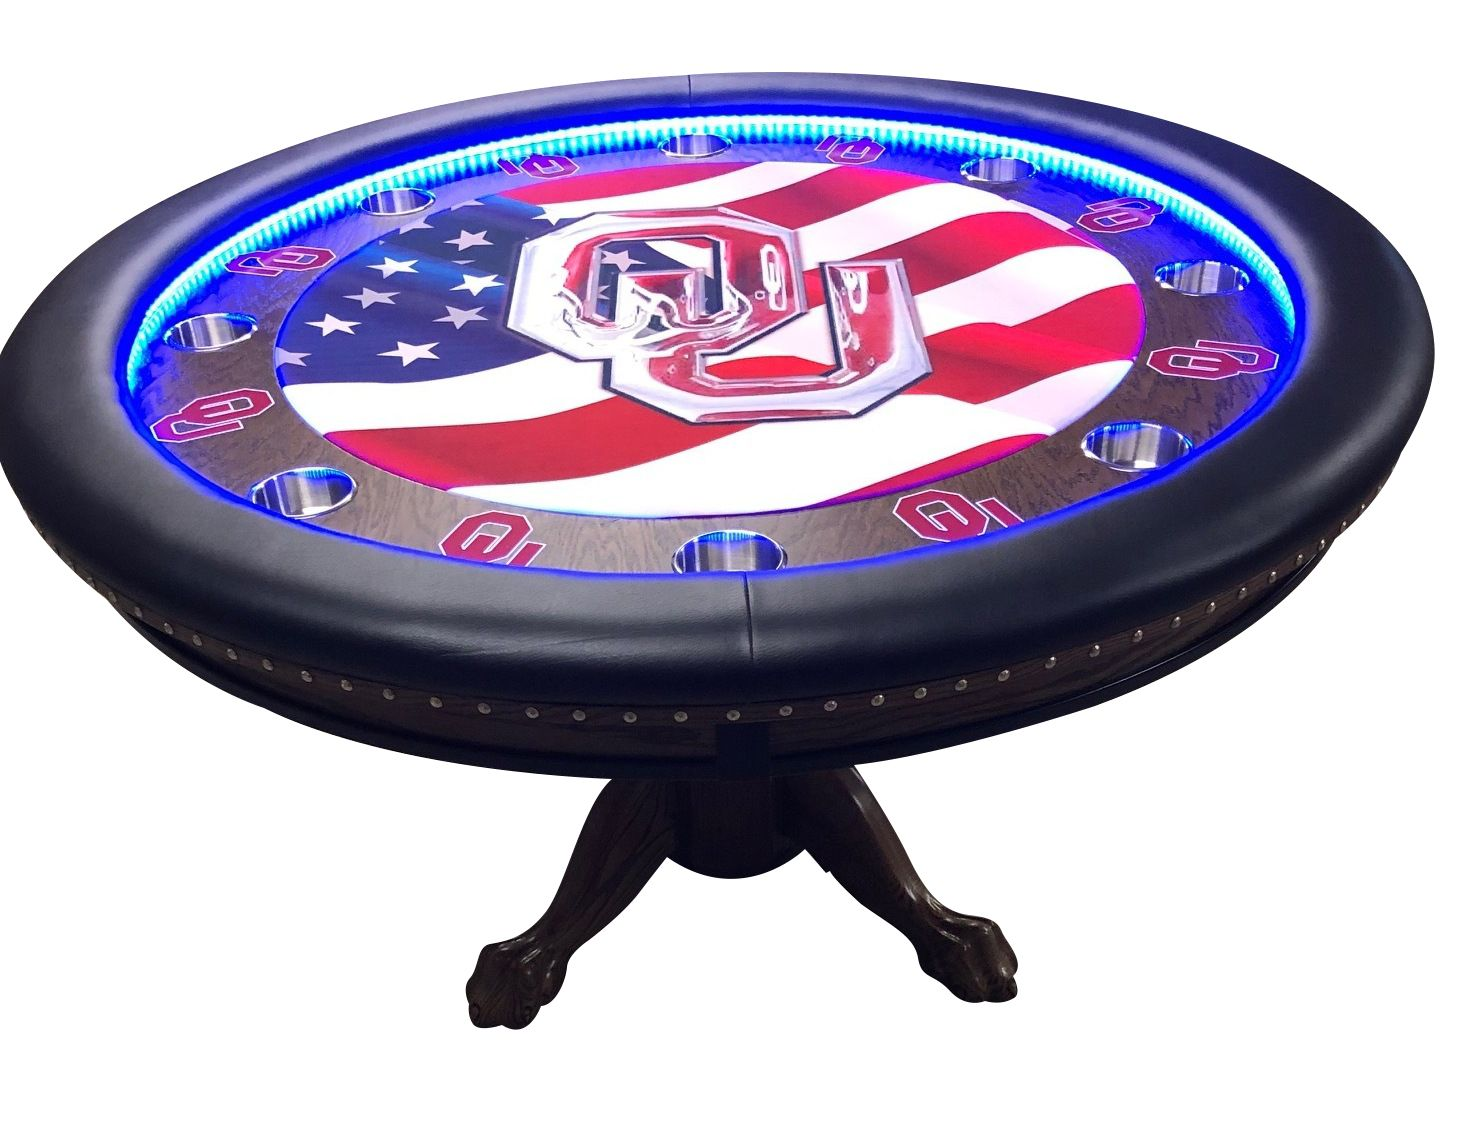 Pin By Thebestpokersite Com On Custom Poker Tables Unique Tables Poker Table Custom Poker Tables Round Poker Table